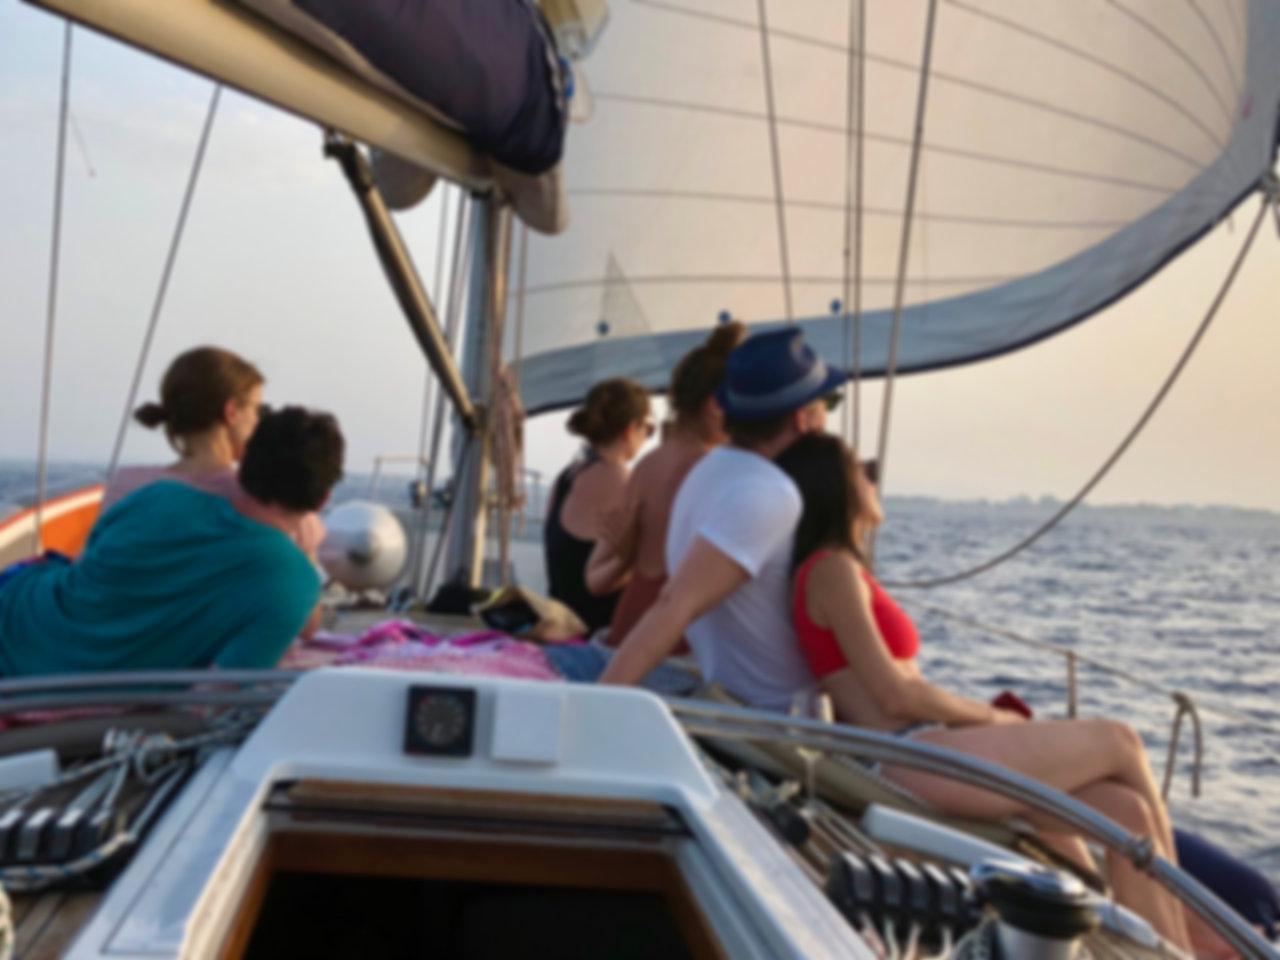 Group of people on a sailing boot at majorca